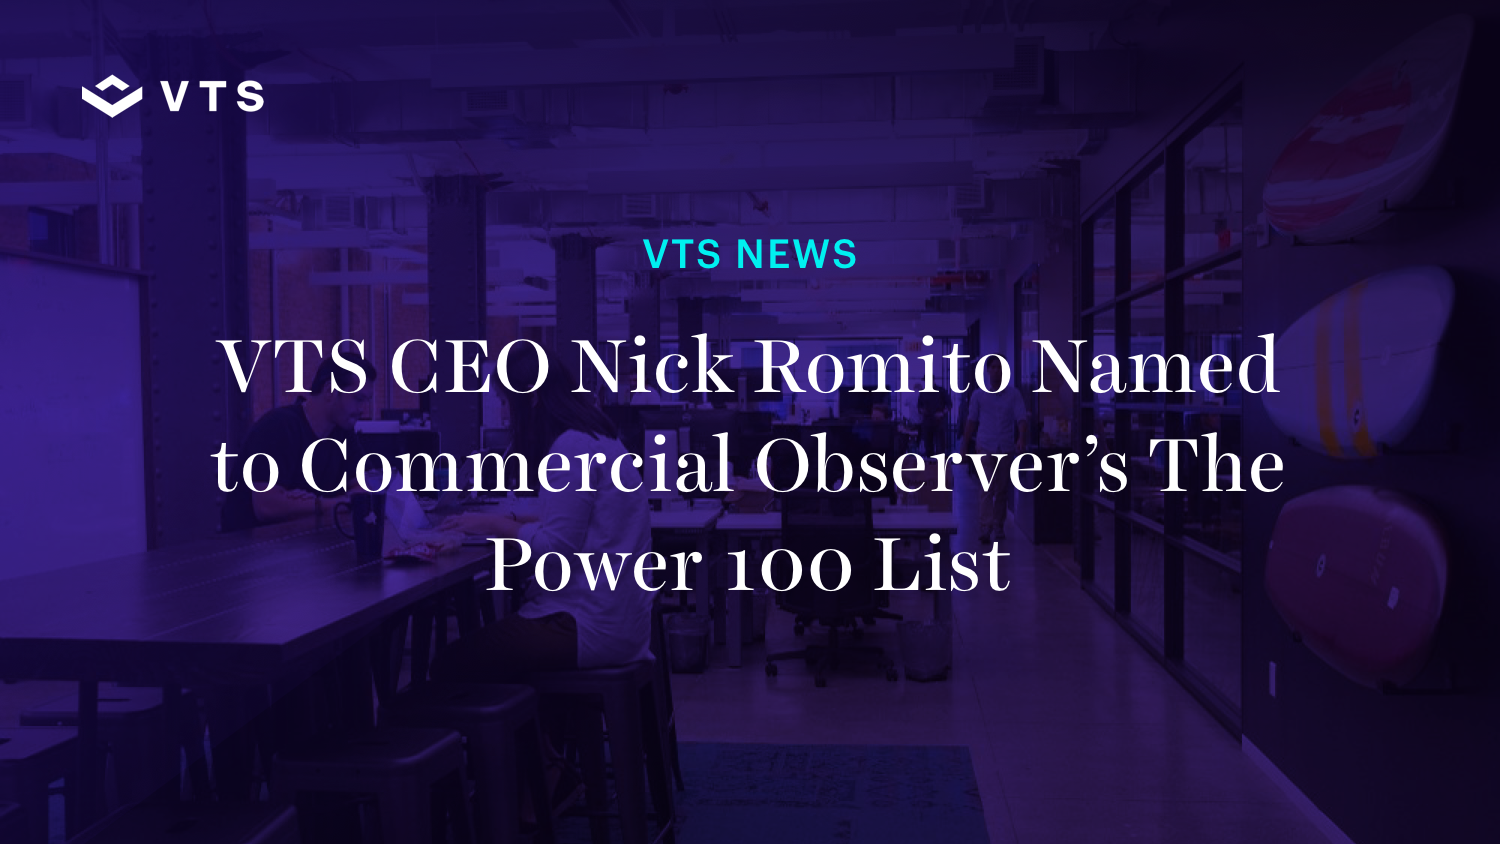 VTS CEO & Co-Founder Nick Romito Named to Commercial Observer's The Power 100 List